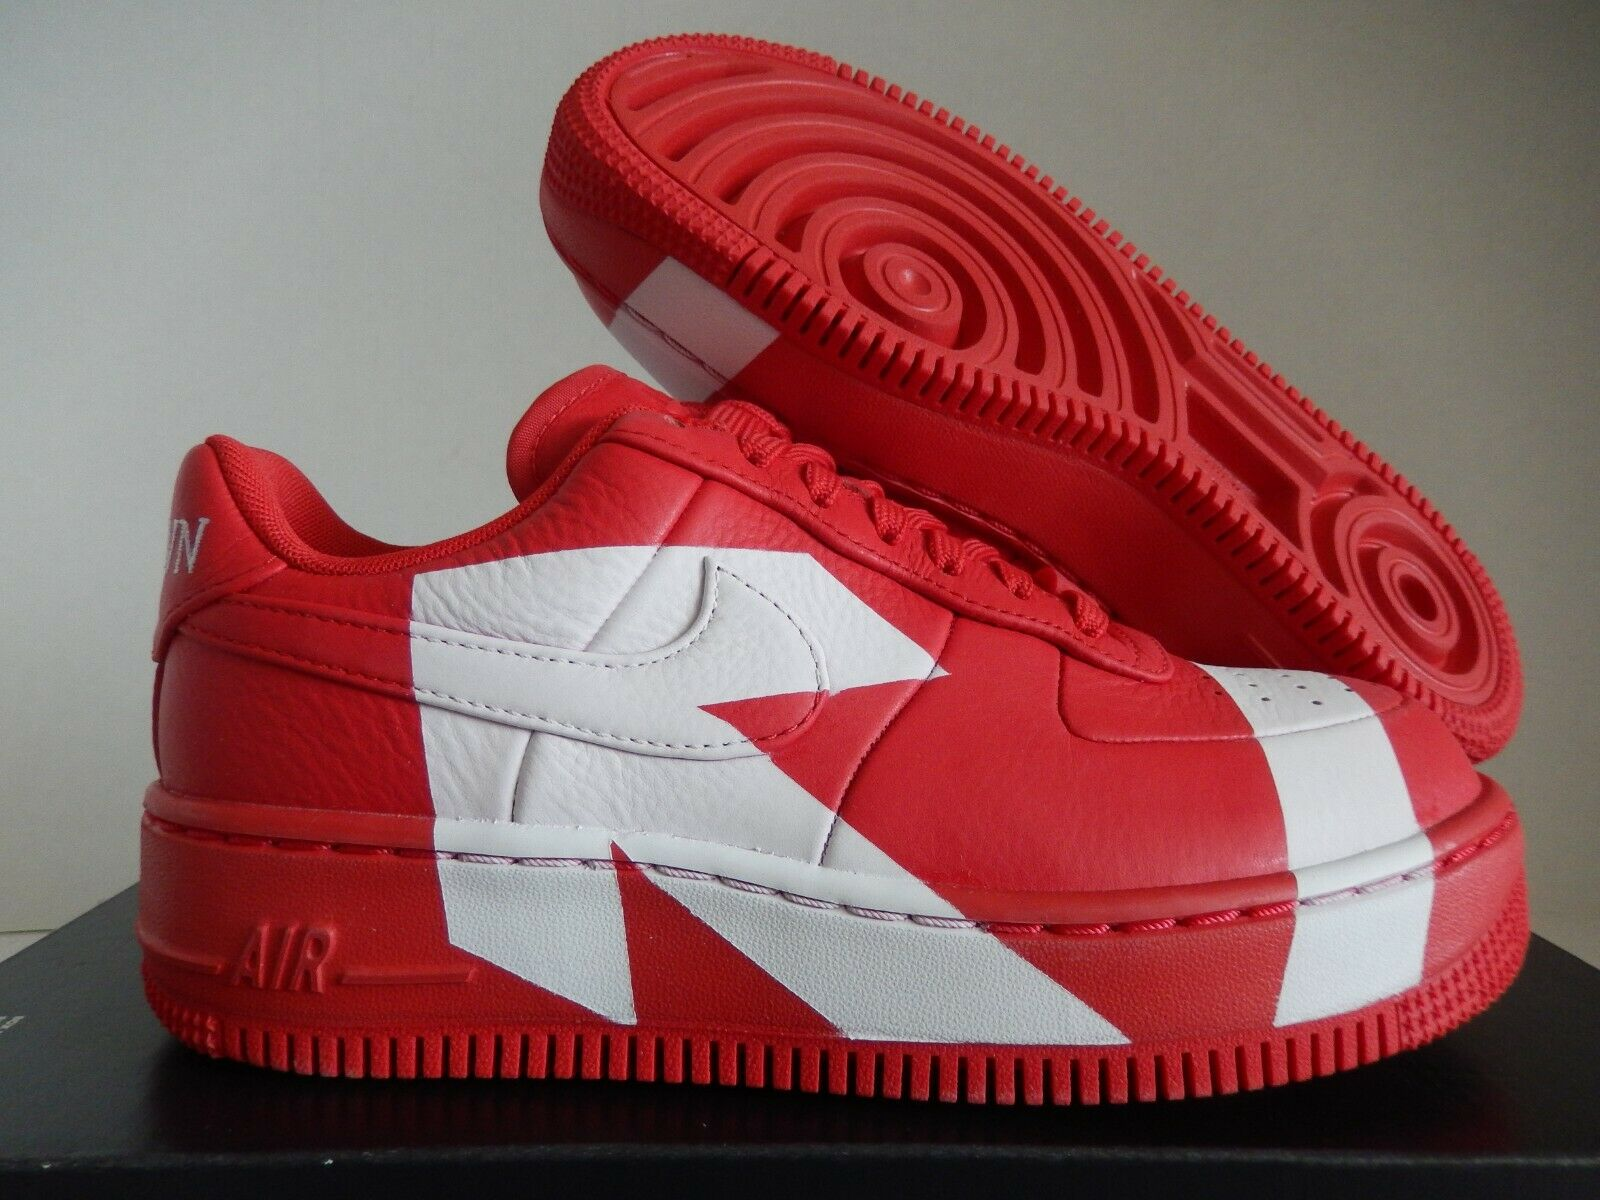 WMNS NIKE AIR FORCE 1 AF1 UPSTEP LX UNIVERSITY RED SZ 6.5  UPTOWN  [898421-601]